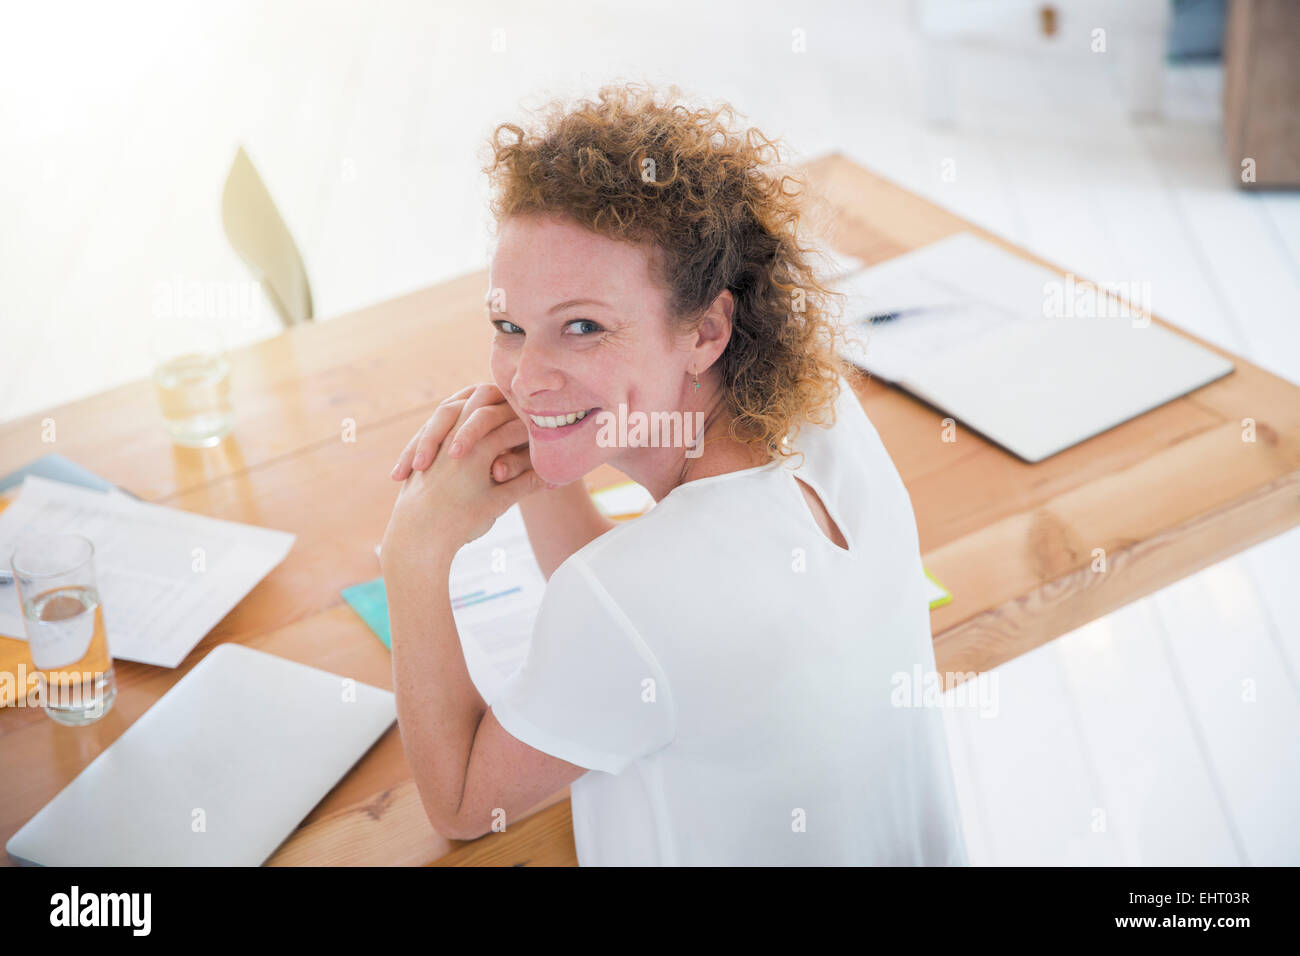 Portrait of young smiling office worker at desk - Stock Image